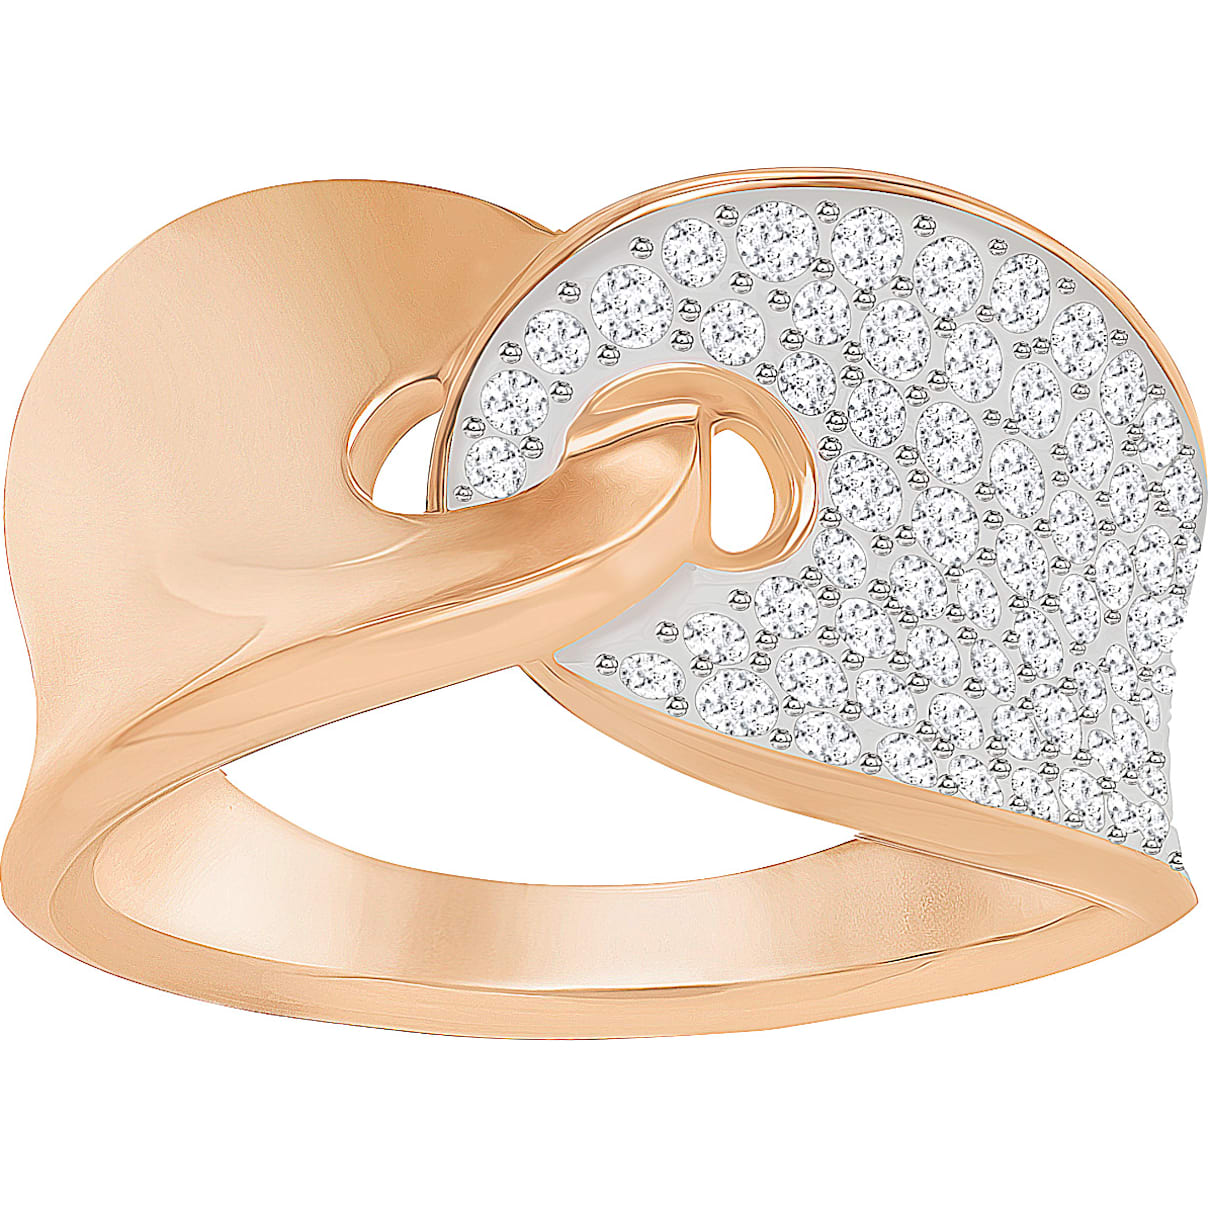 Swarovski Guardian Ring, White, Rose-gold tone plated